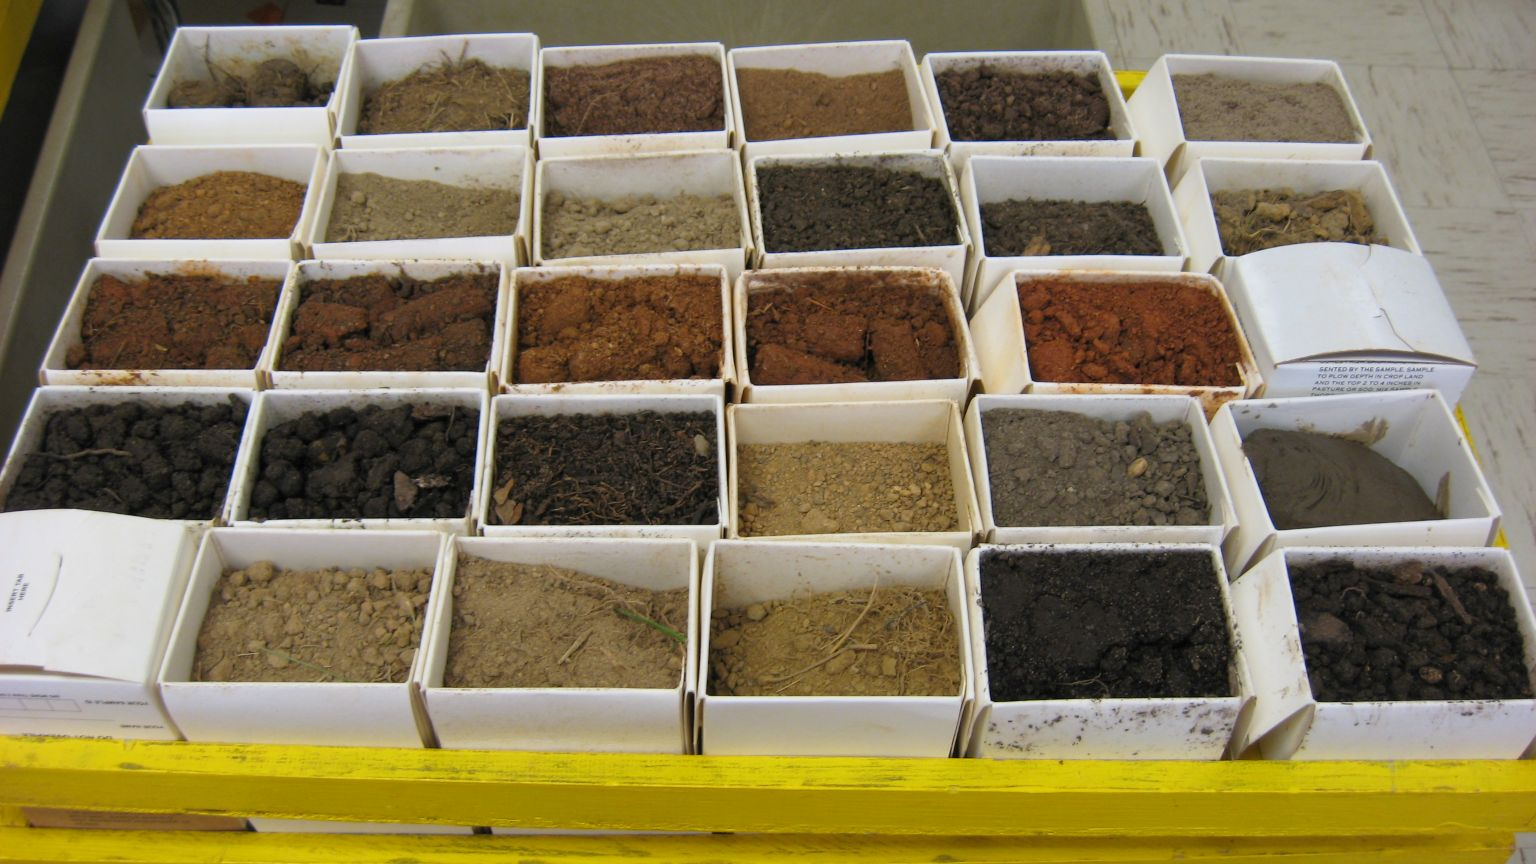 Tray full of soil samples.